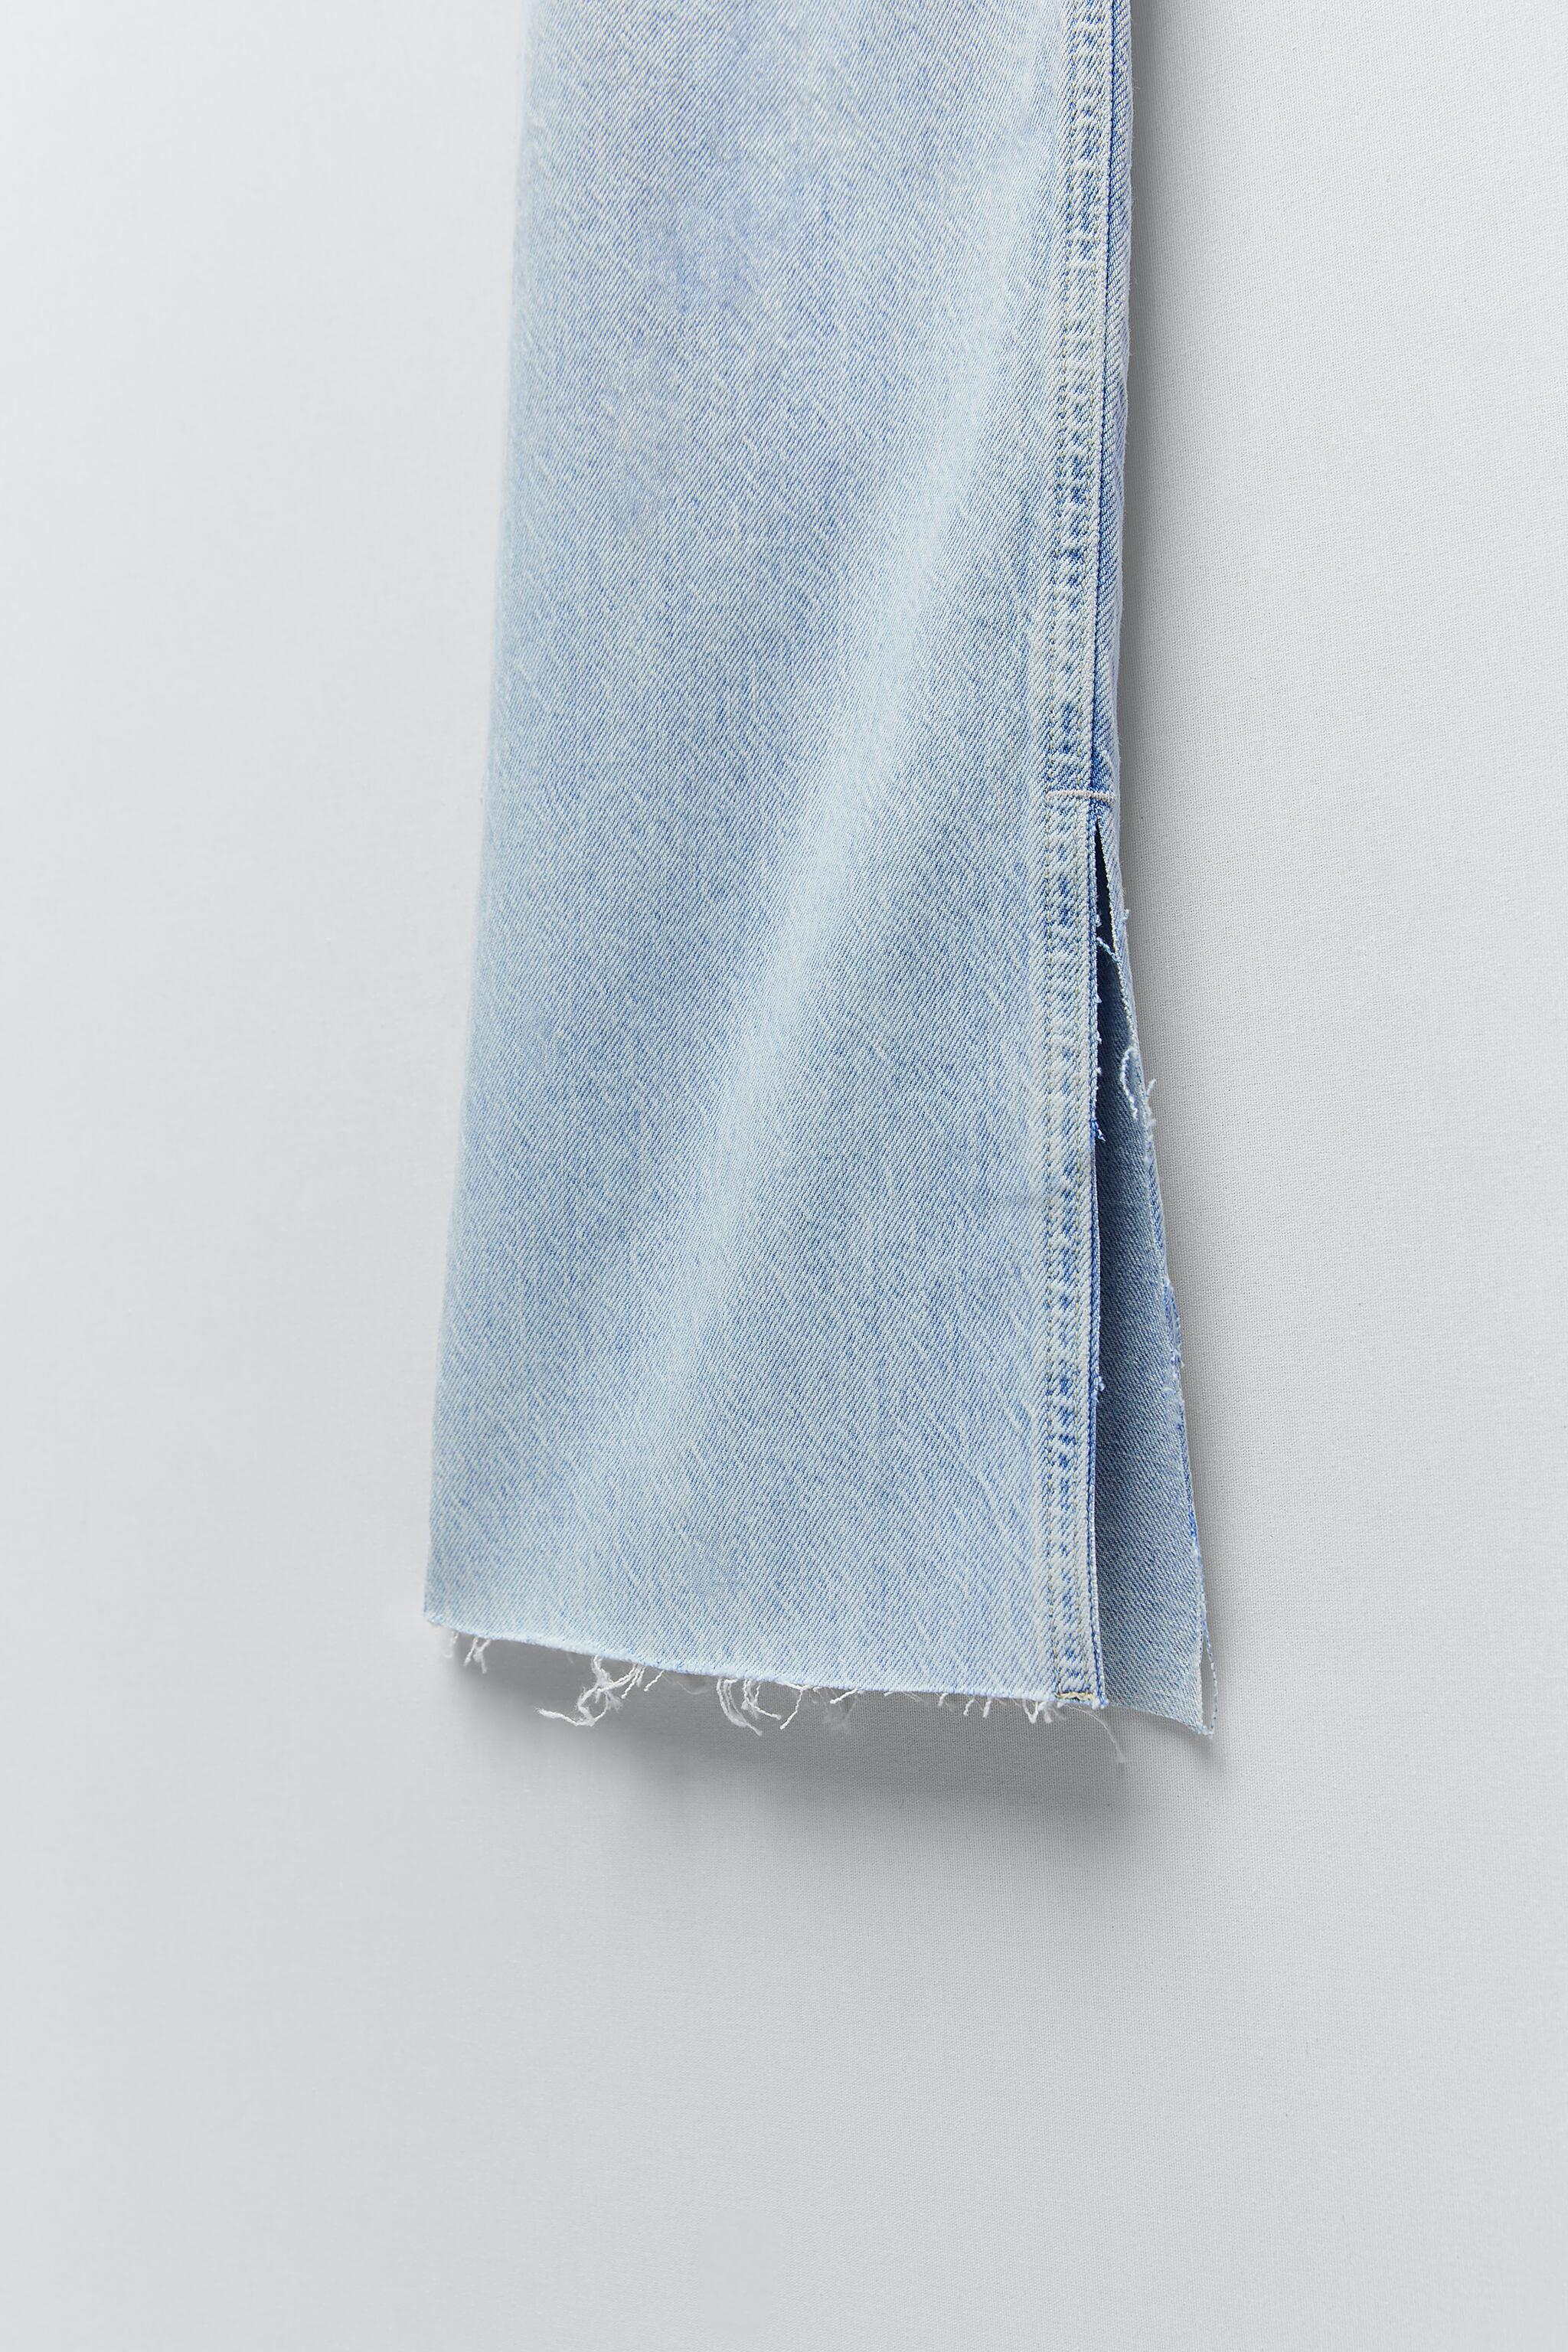 Z1975 FLARED RIPPED SLIM FIT JEANS 8